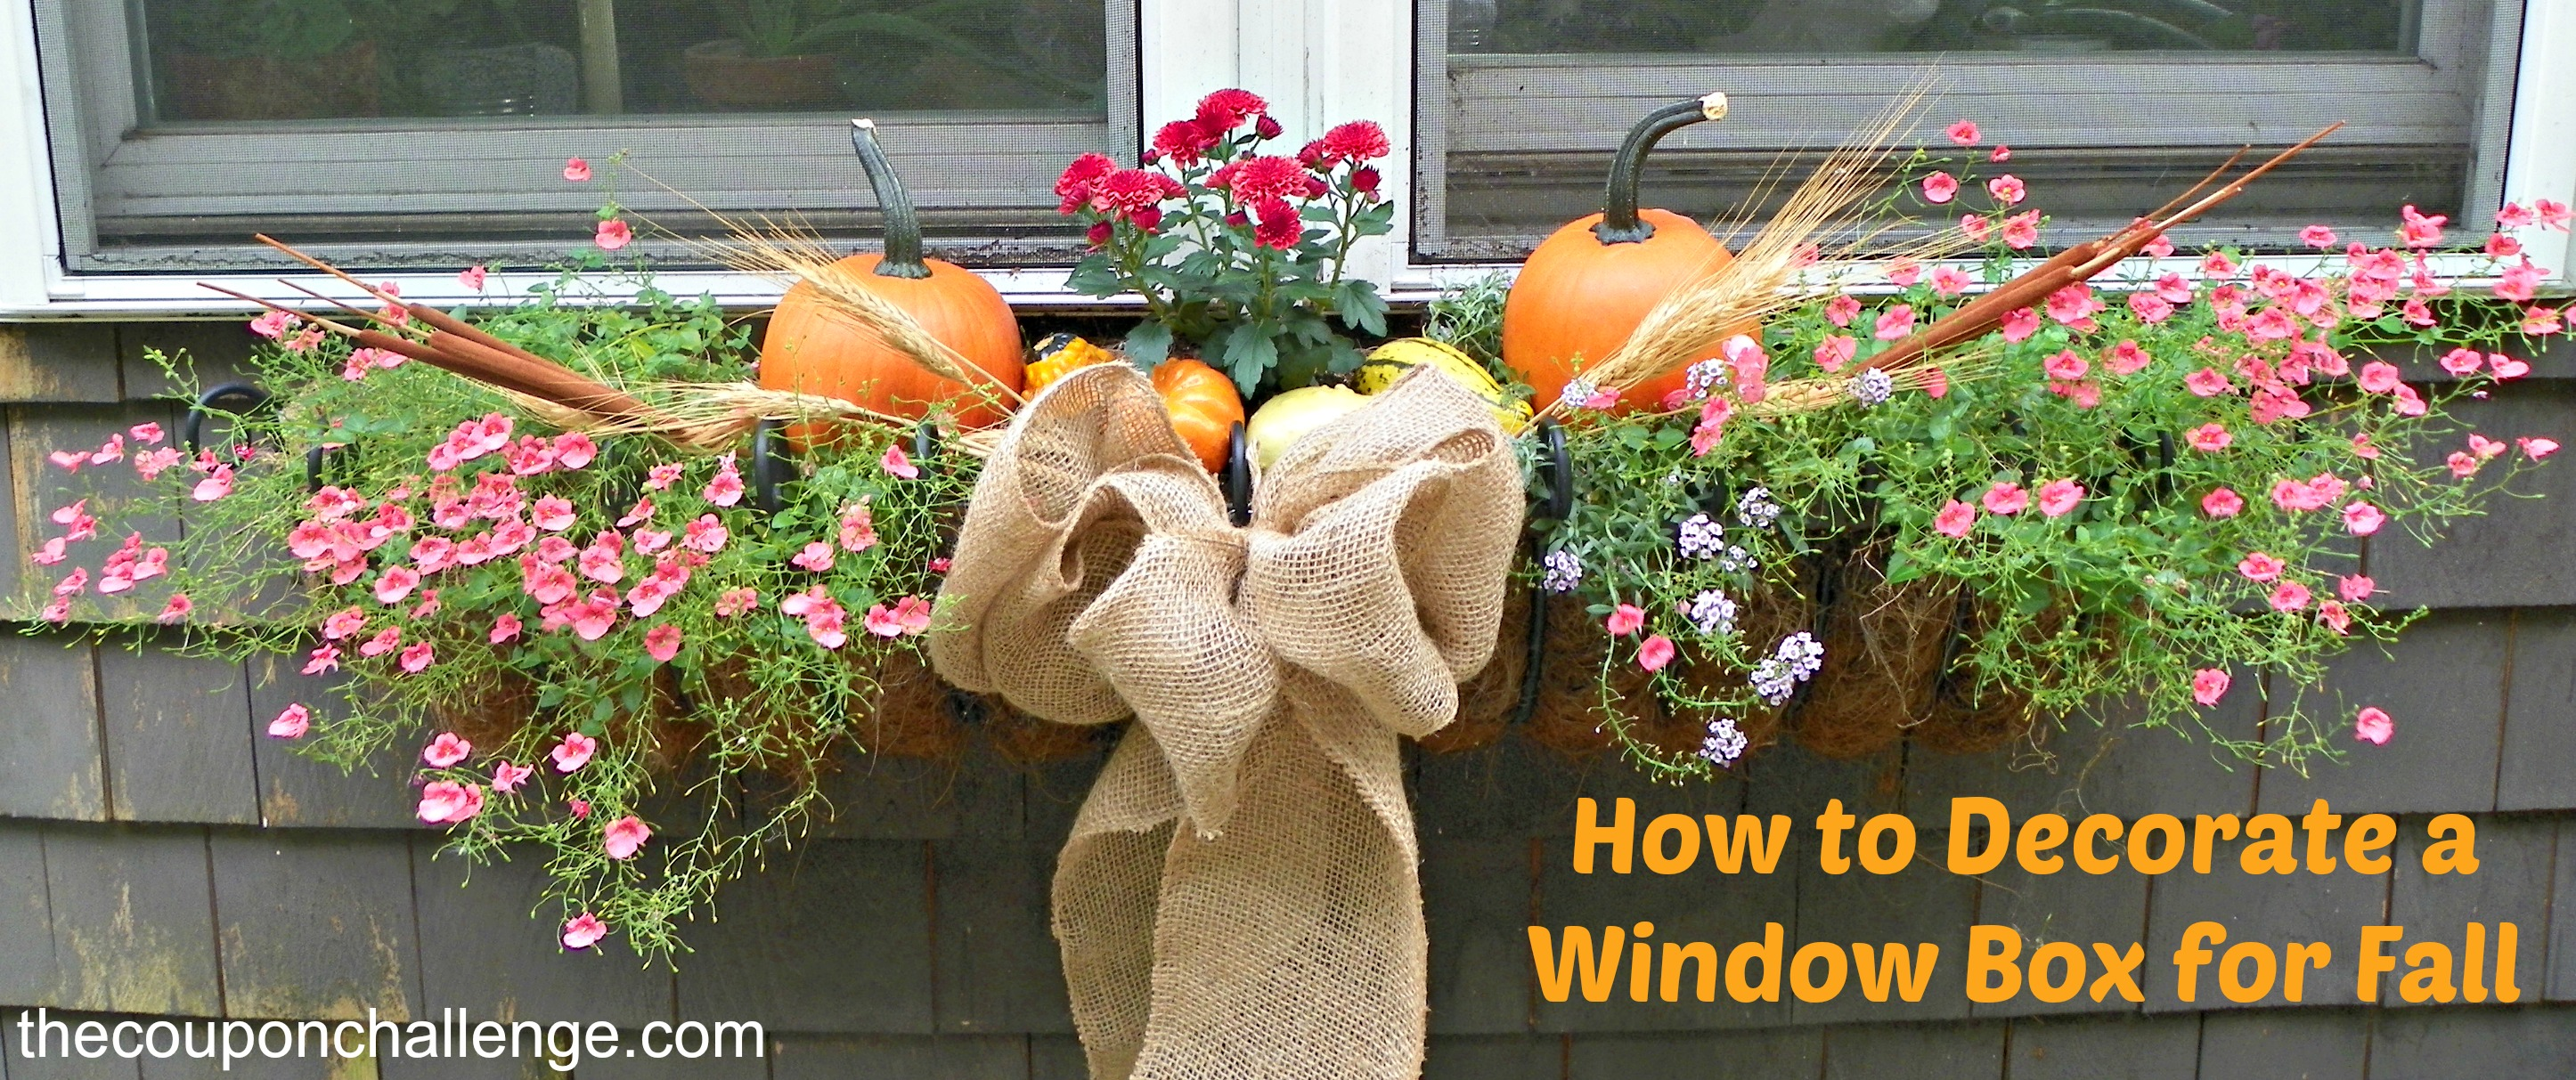 Fall window boxes - How to decorate with spring flowers ...